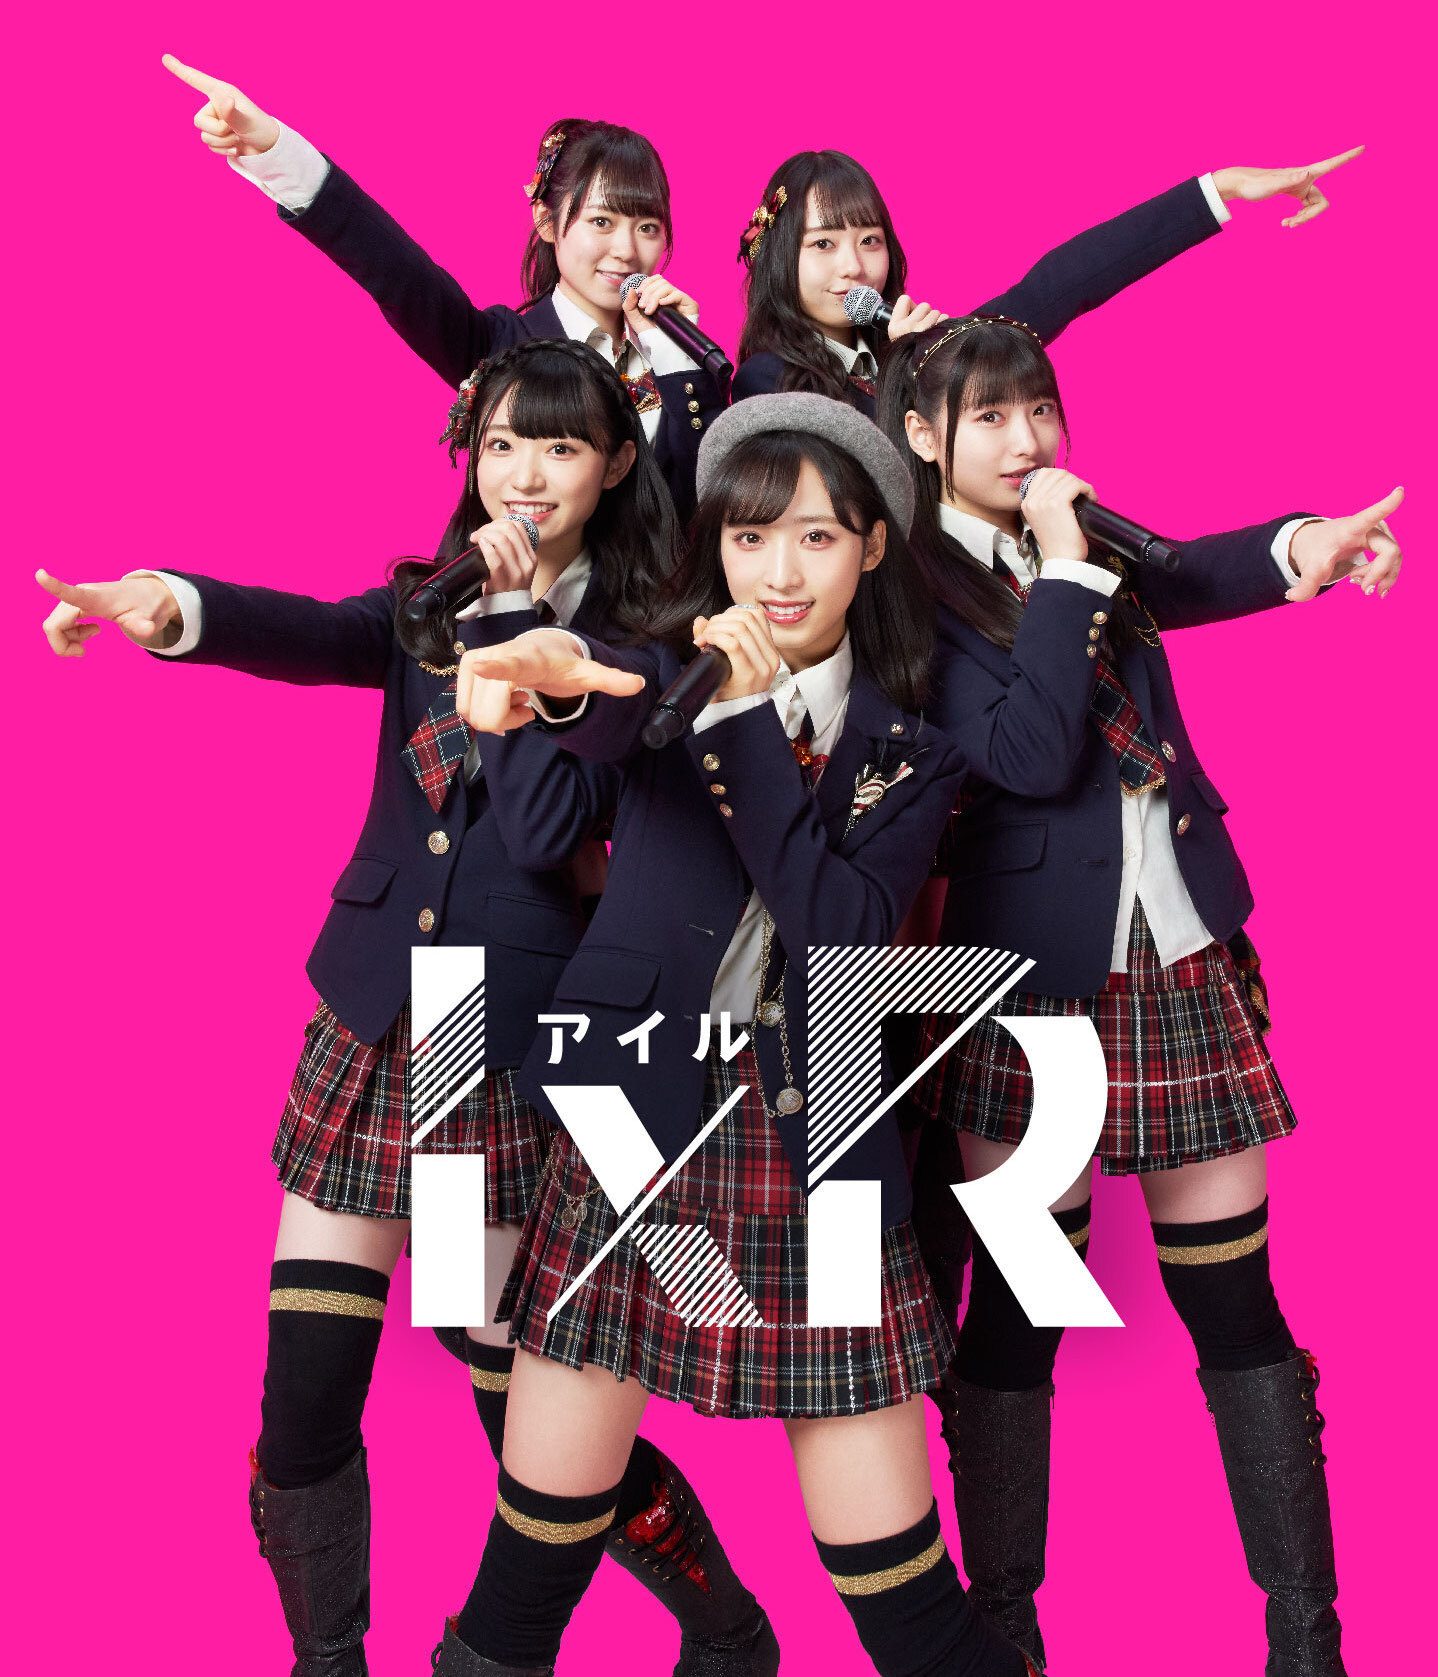 IxR(アイル)from AKB48 XRLIVE